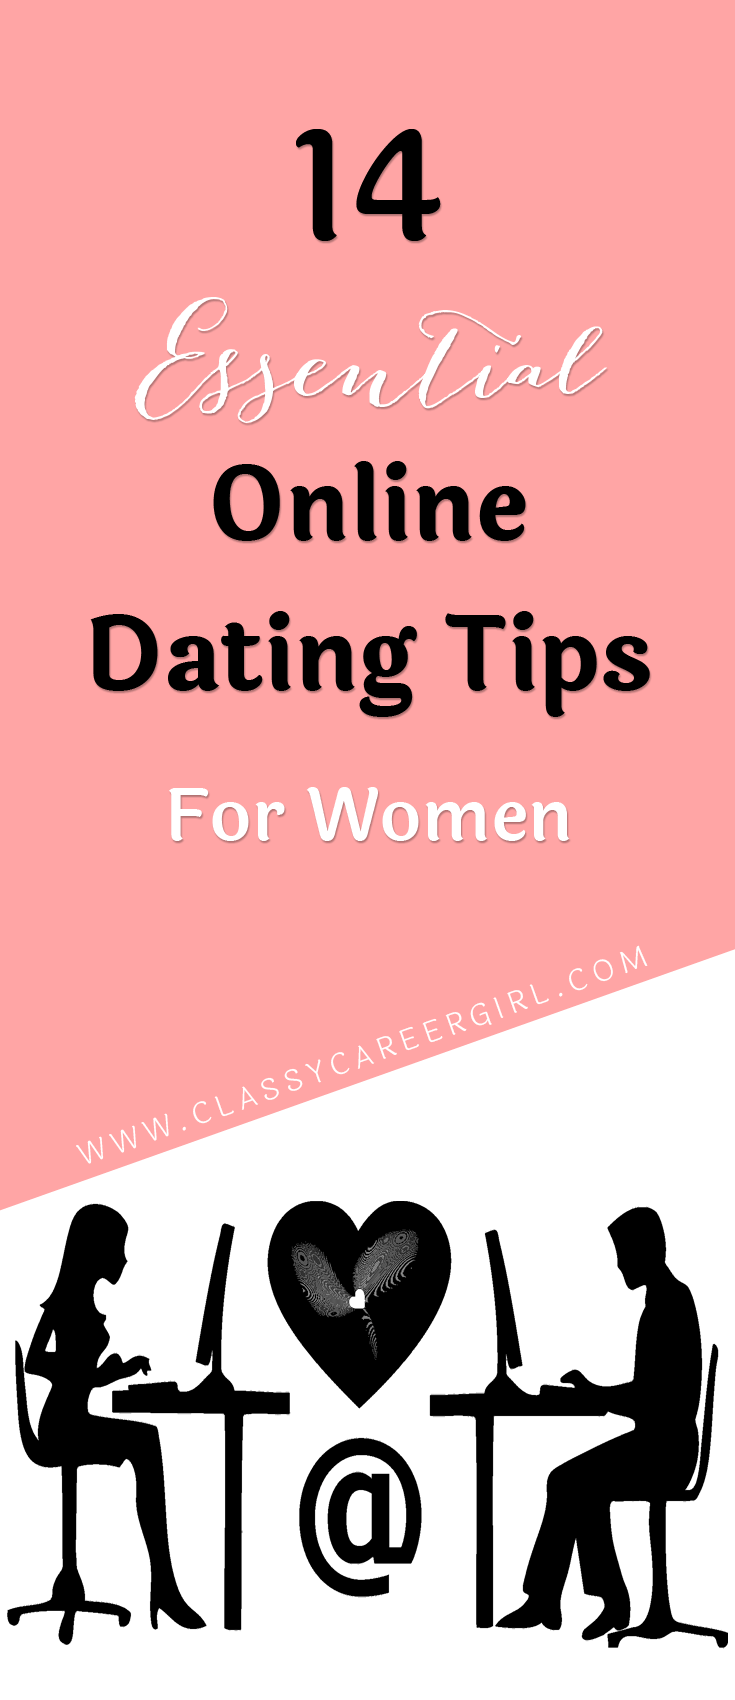 How To Get Genuine Dates And Avoid Catfish